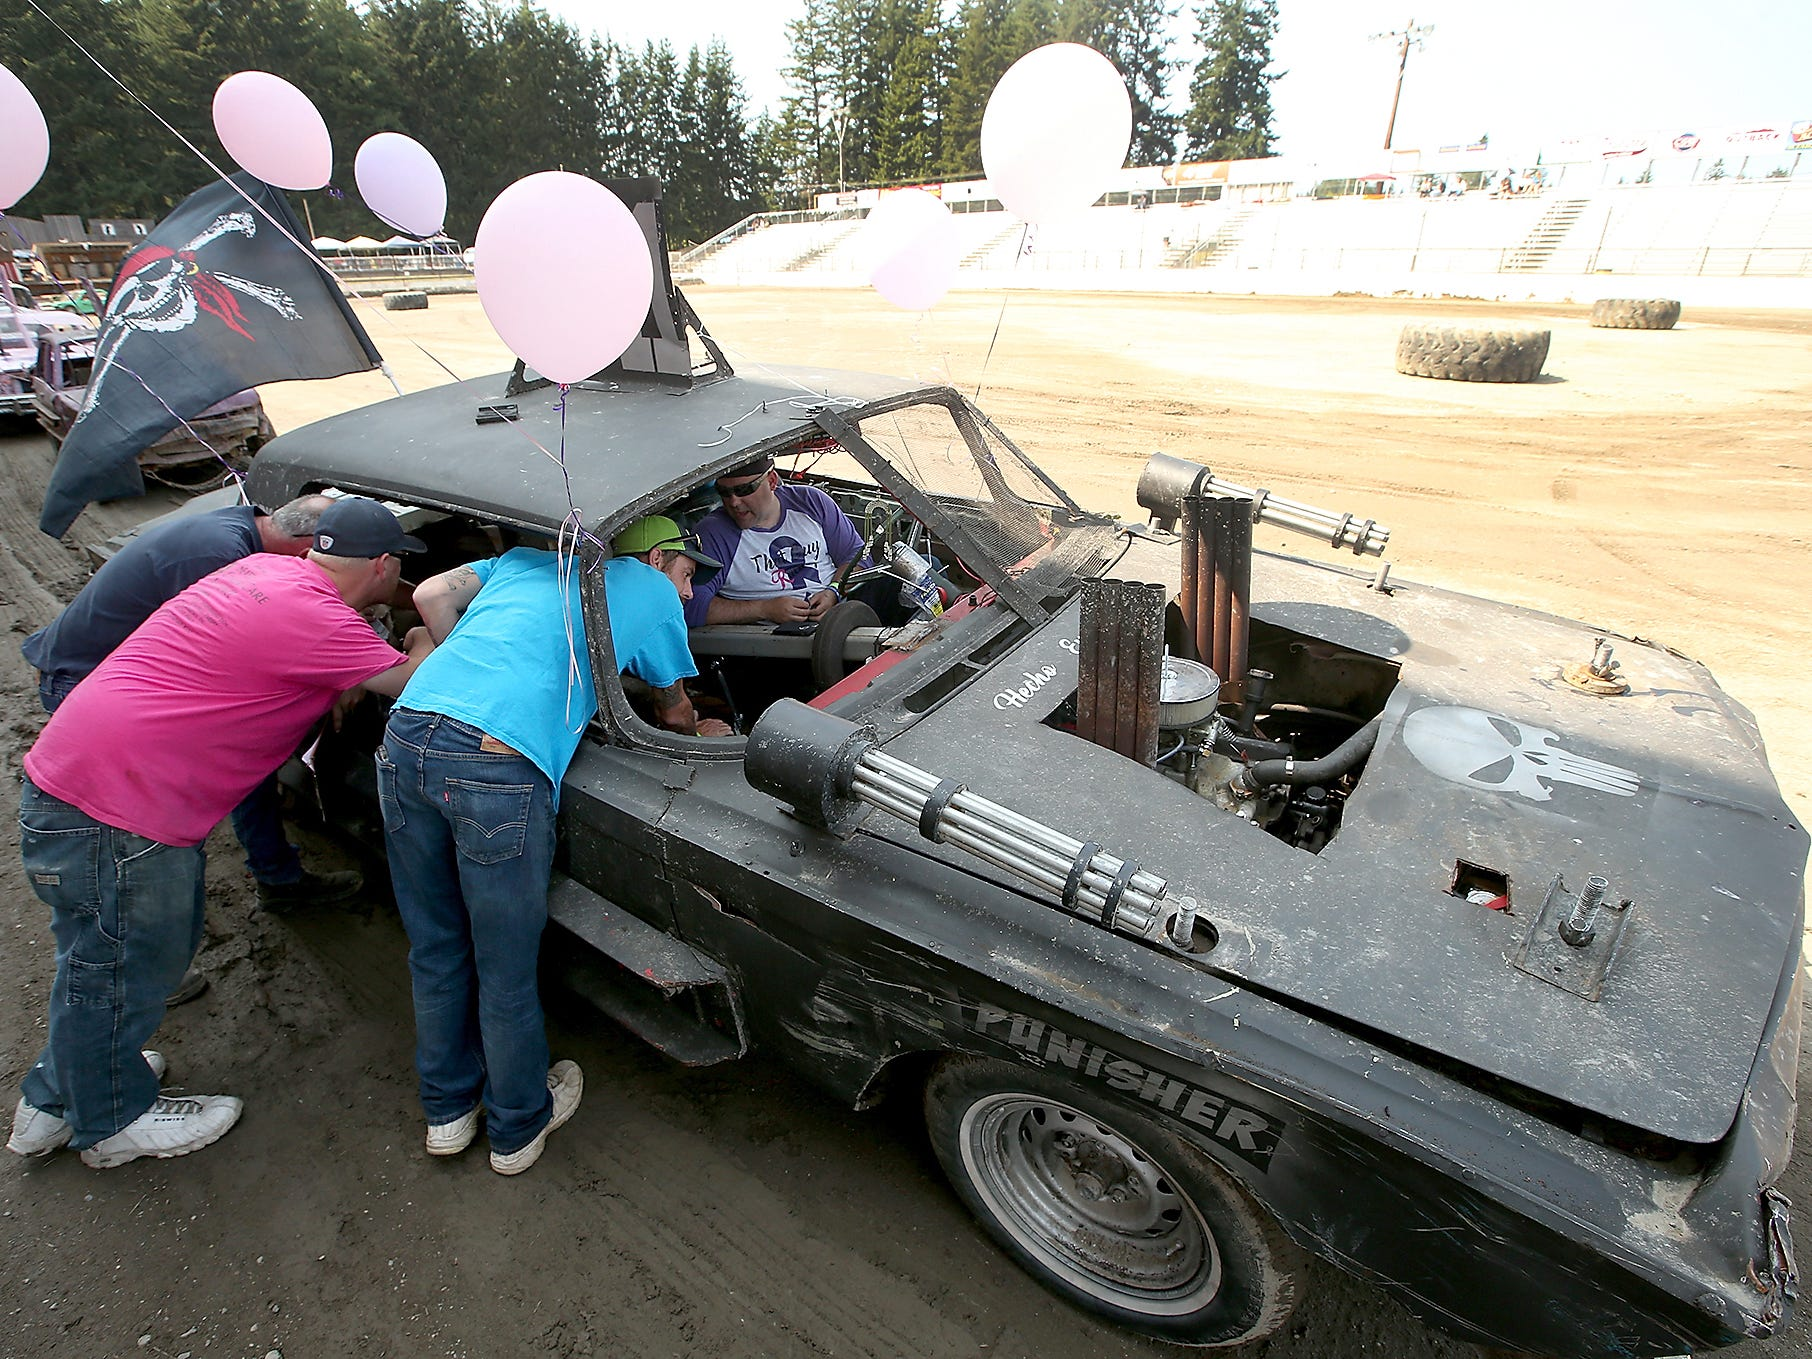 Kitsap Destruction Derby Association safety techs (left to right) KC Straight, Victor Trent and Dan Garrison peer into Kevin Lewis's car prior to the start of the Kitsap Destruction Derby at Thunderbird Arena at the Kitsap County Fairgrounds on Saturday, July 28, 2018.